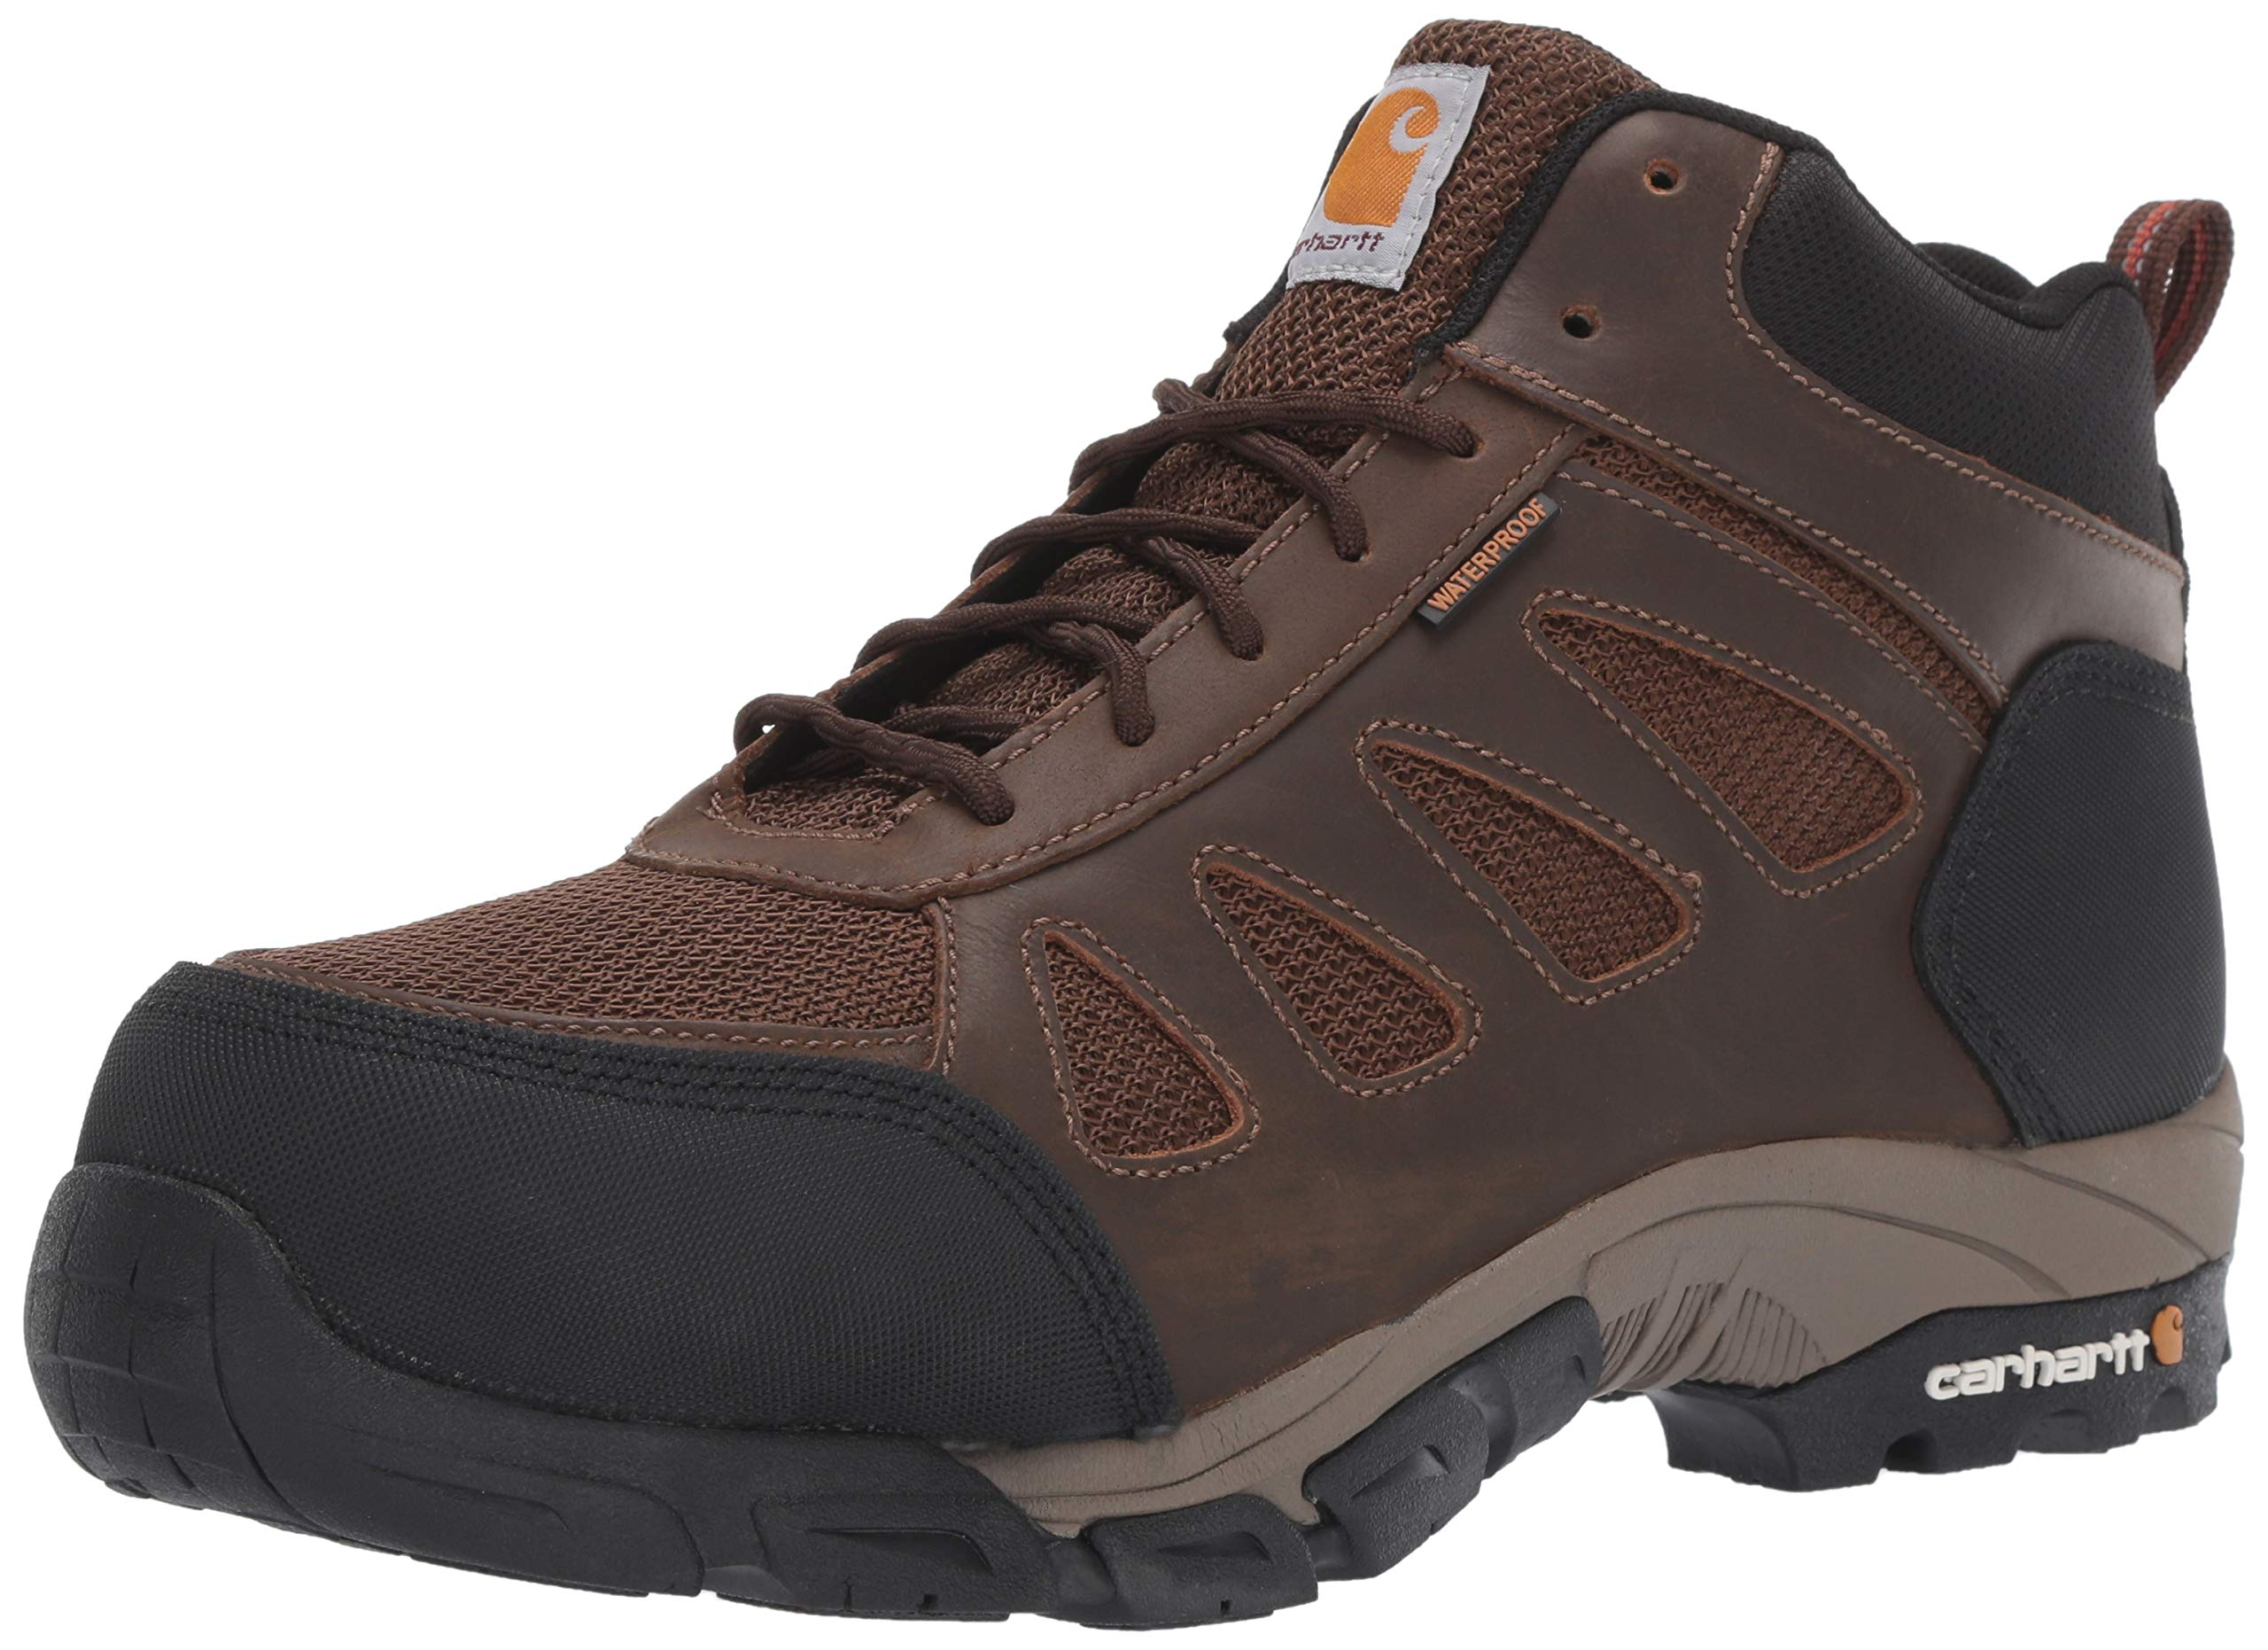 Carhartt Men's Lightweight Wtrprf Mid-Height Work Hiker Carbon Nano Safety Toe Cmh4480 Industrial Boot